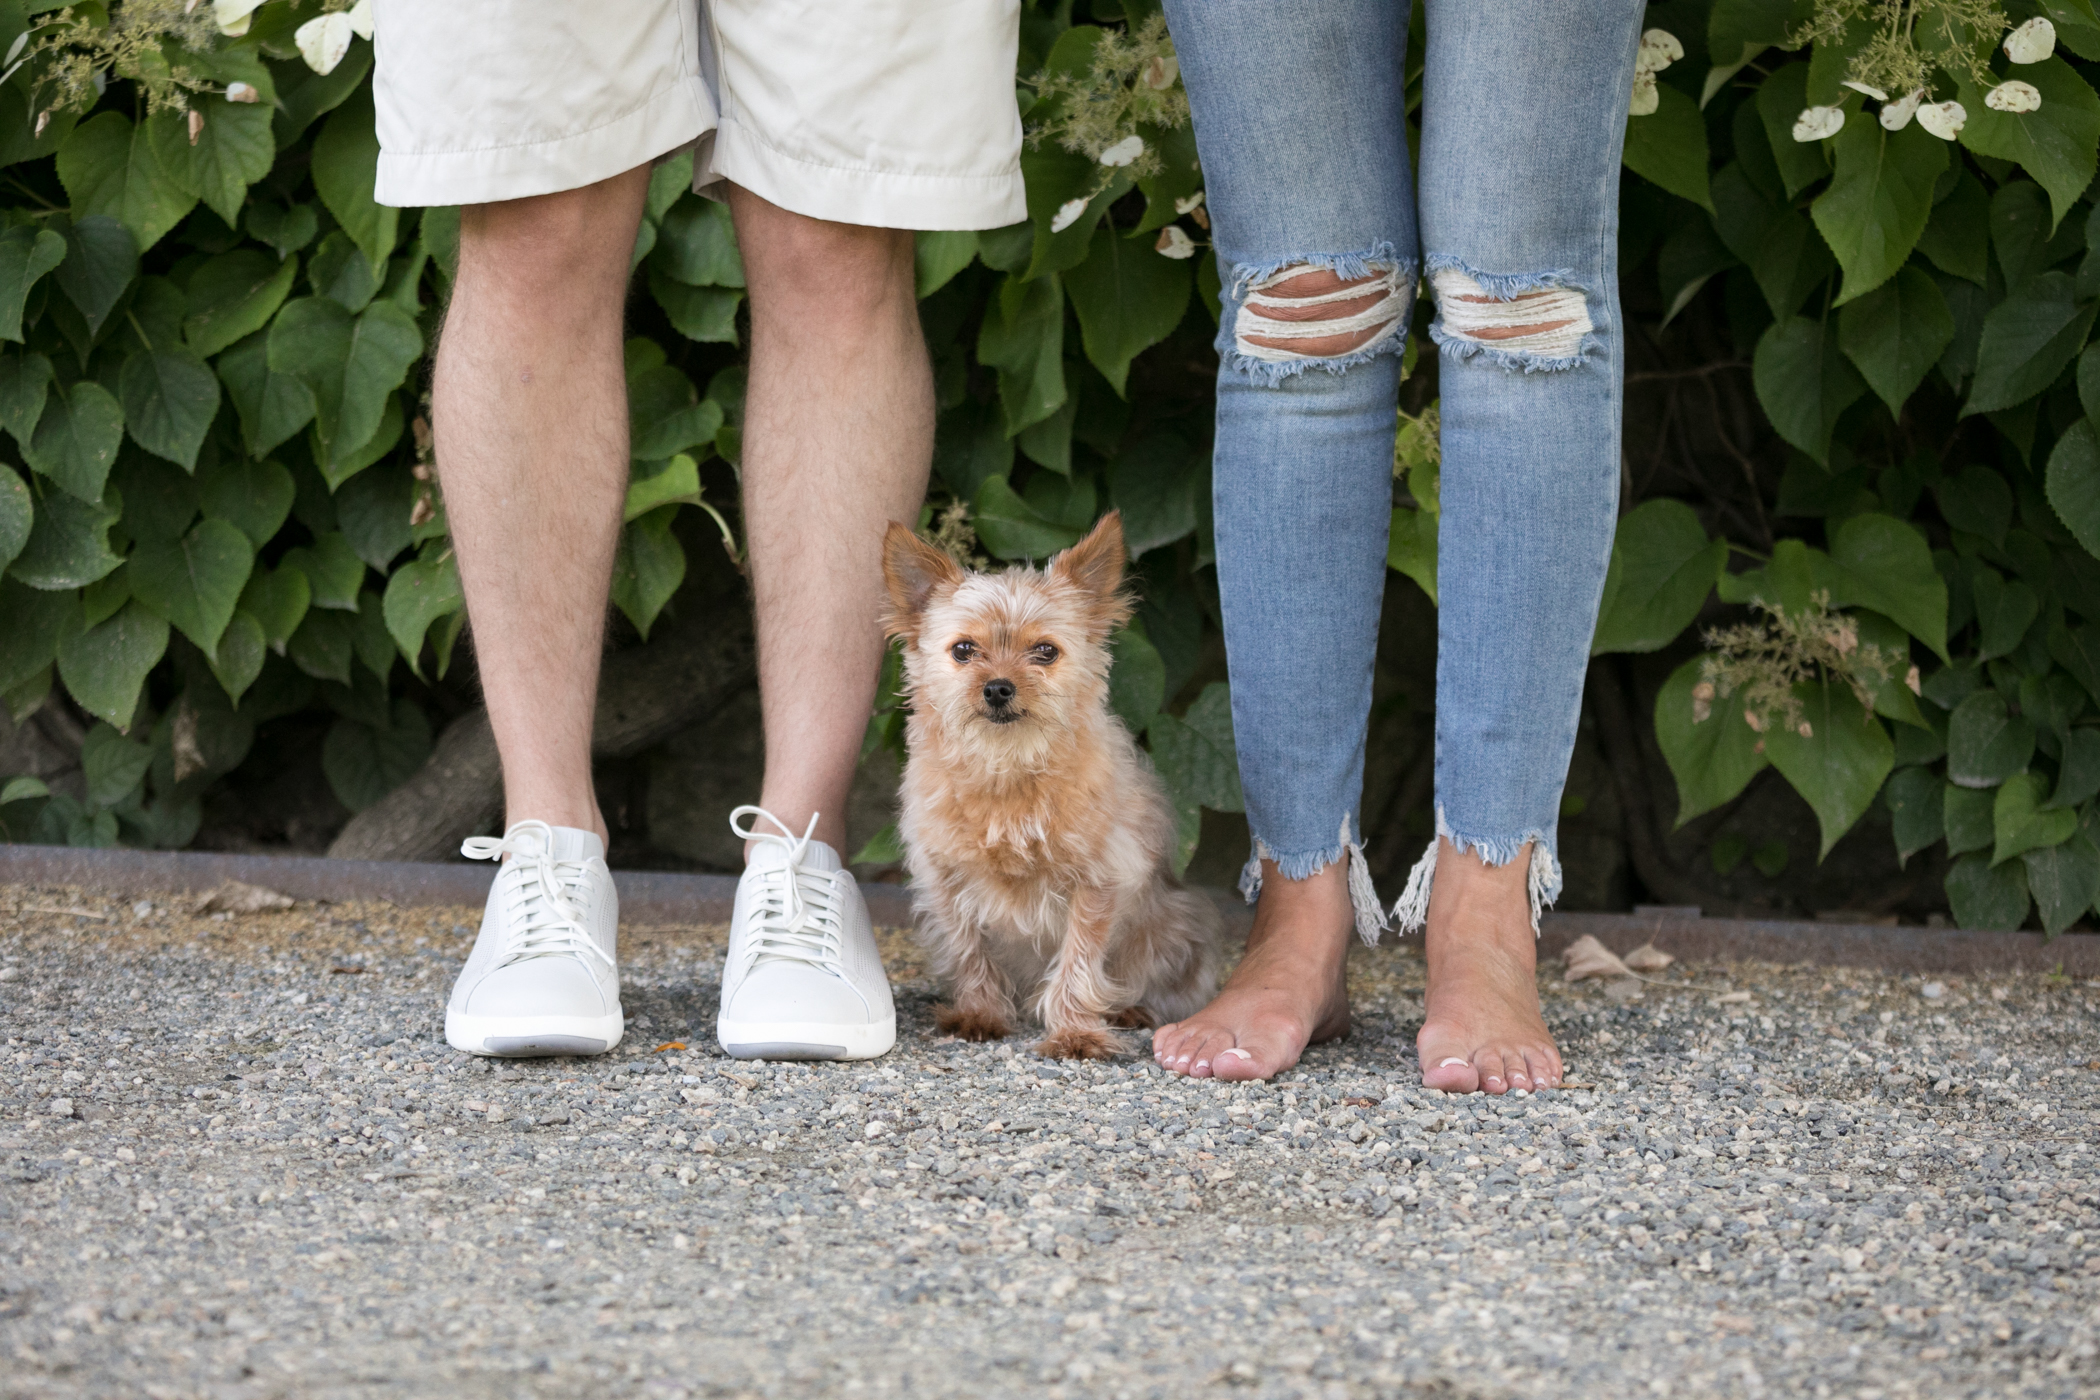 jamaica-plains-ny-arnold-arboretum-morkie-boston-dog-photographer